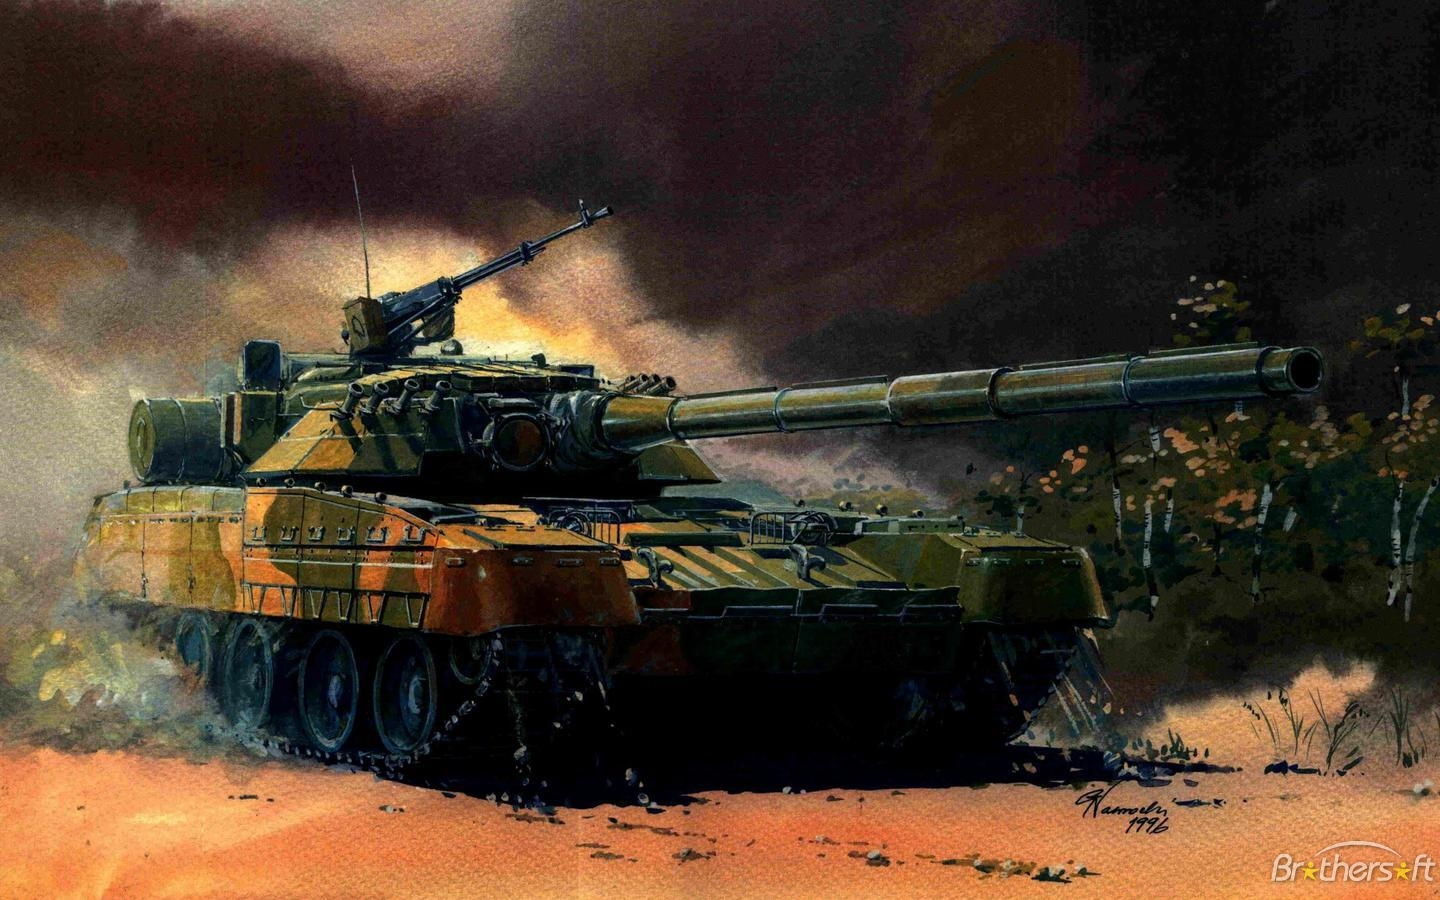 Tank | Tank Images, Pictures, Wallpapers on B.SCB